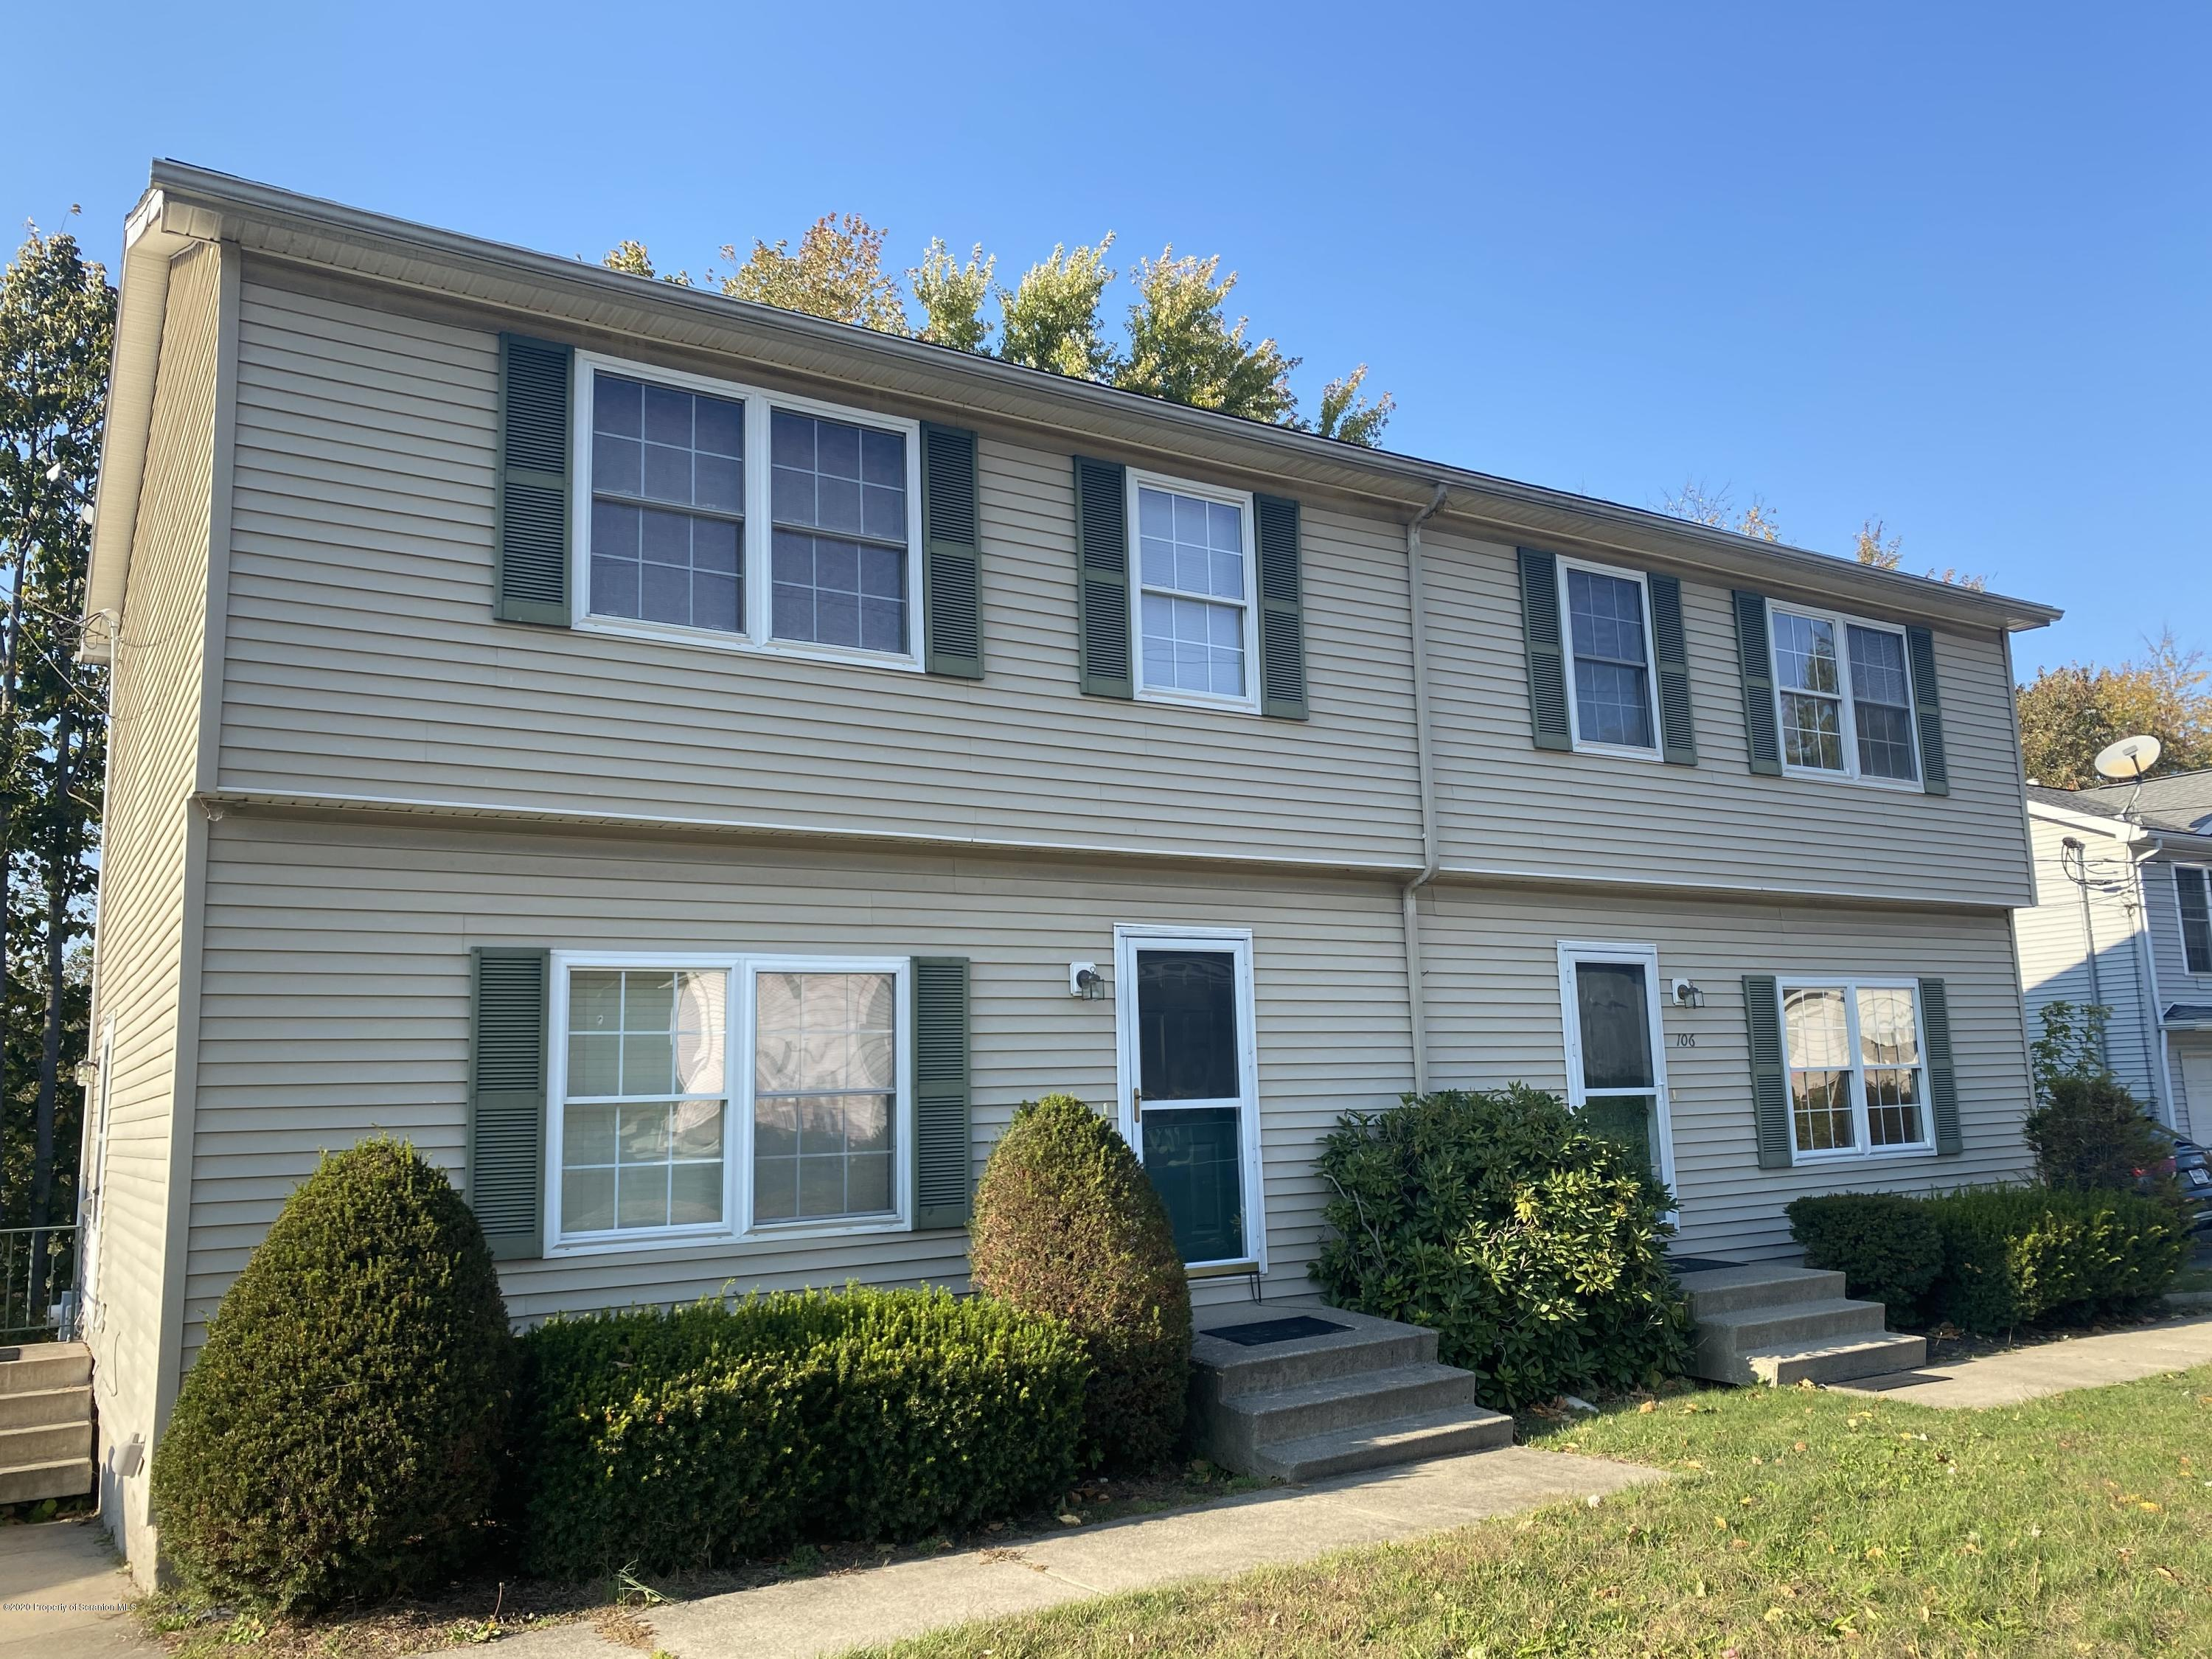 106-108 Front St, Jessup, Pennsylvania 18434, ,Multi-Family,For Sale,Front,20-4440